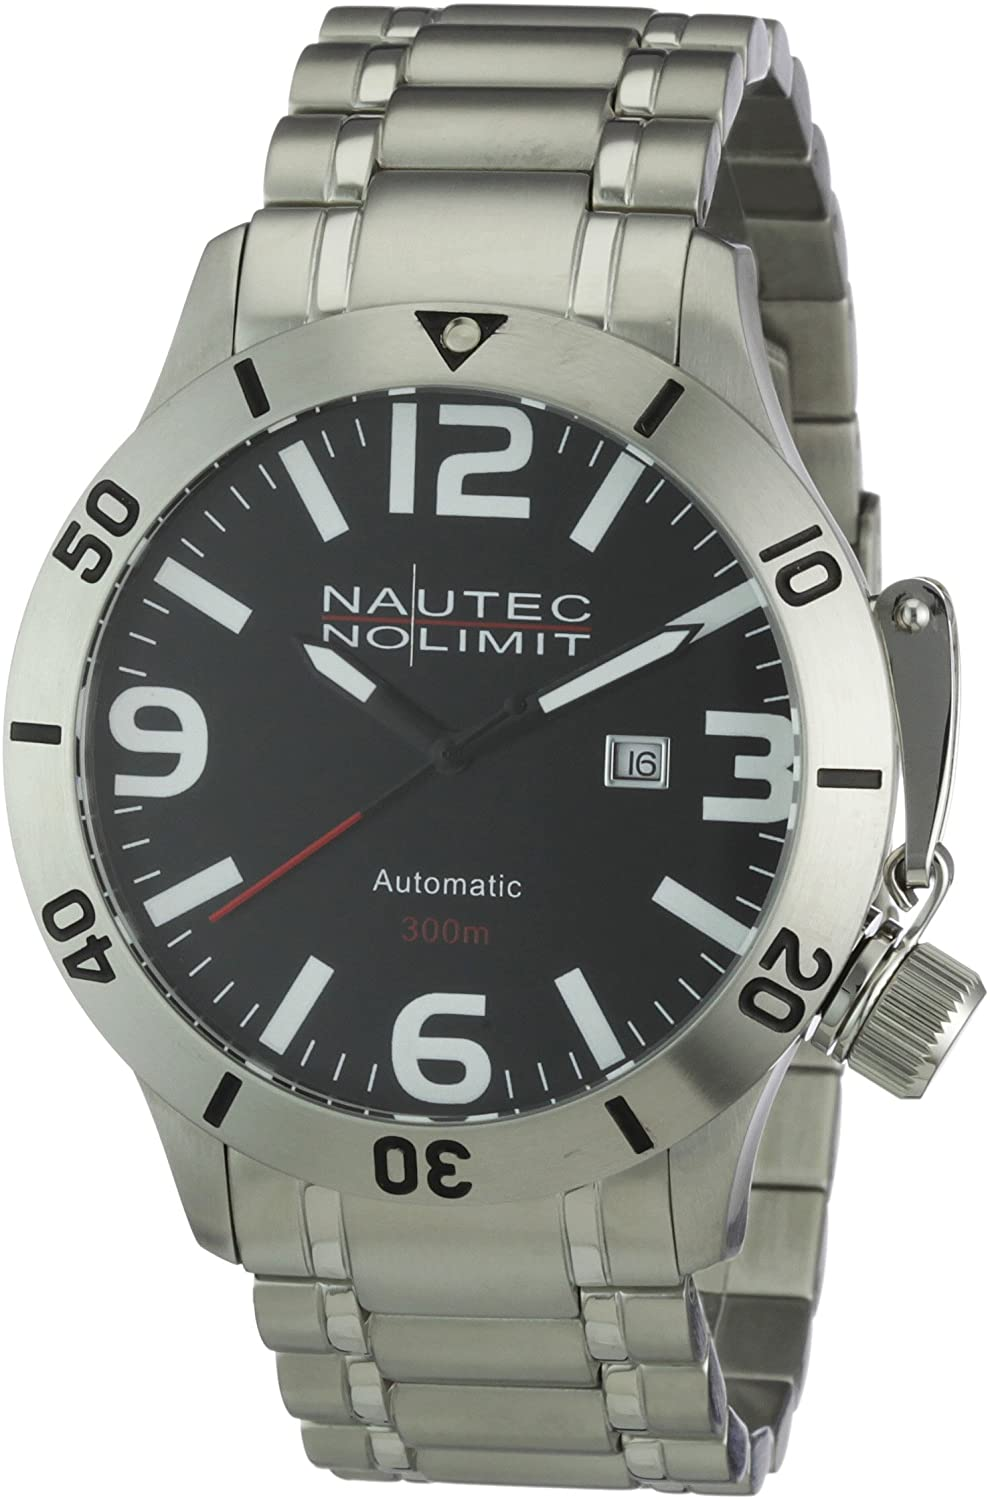 Nautec No Limit Herren-Armbanduhr Analog Automatik Canteen Diver CD AT-STSTSTBK